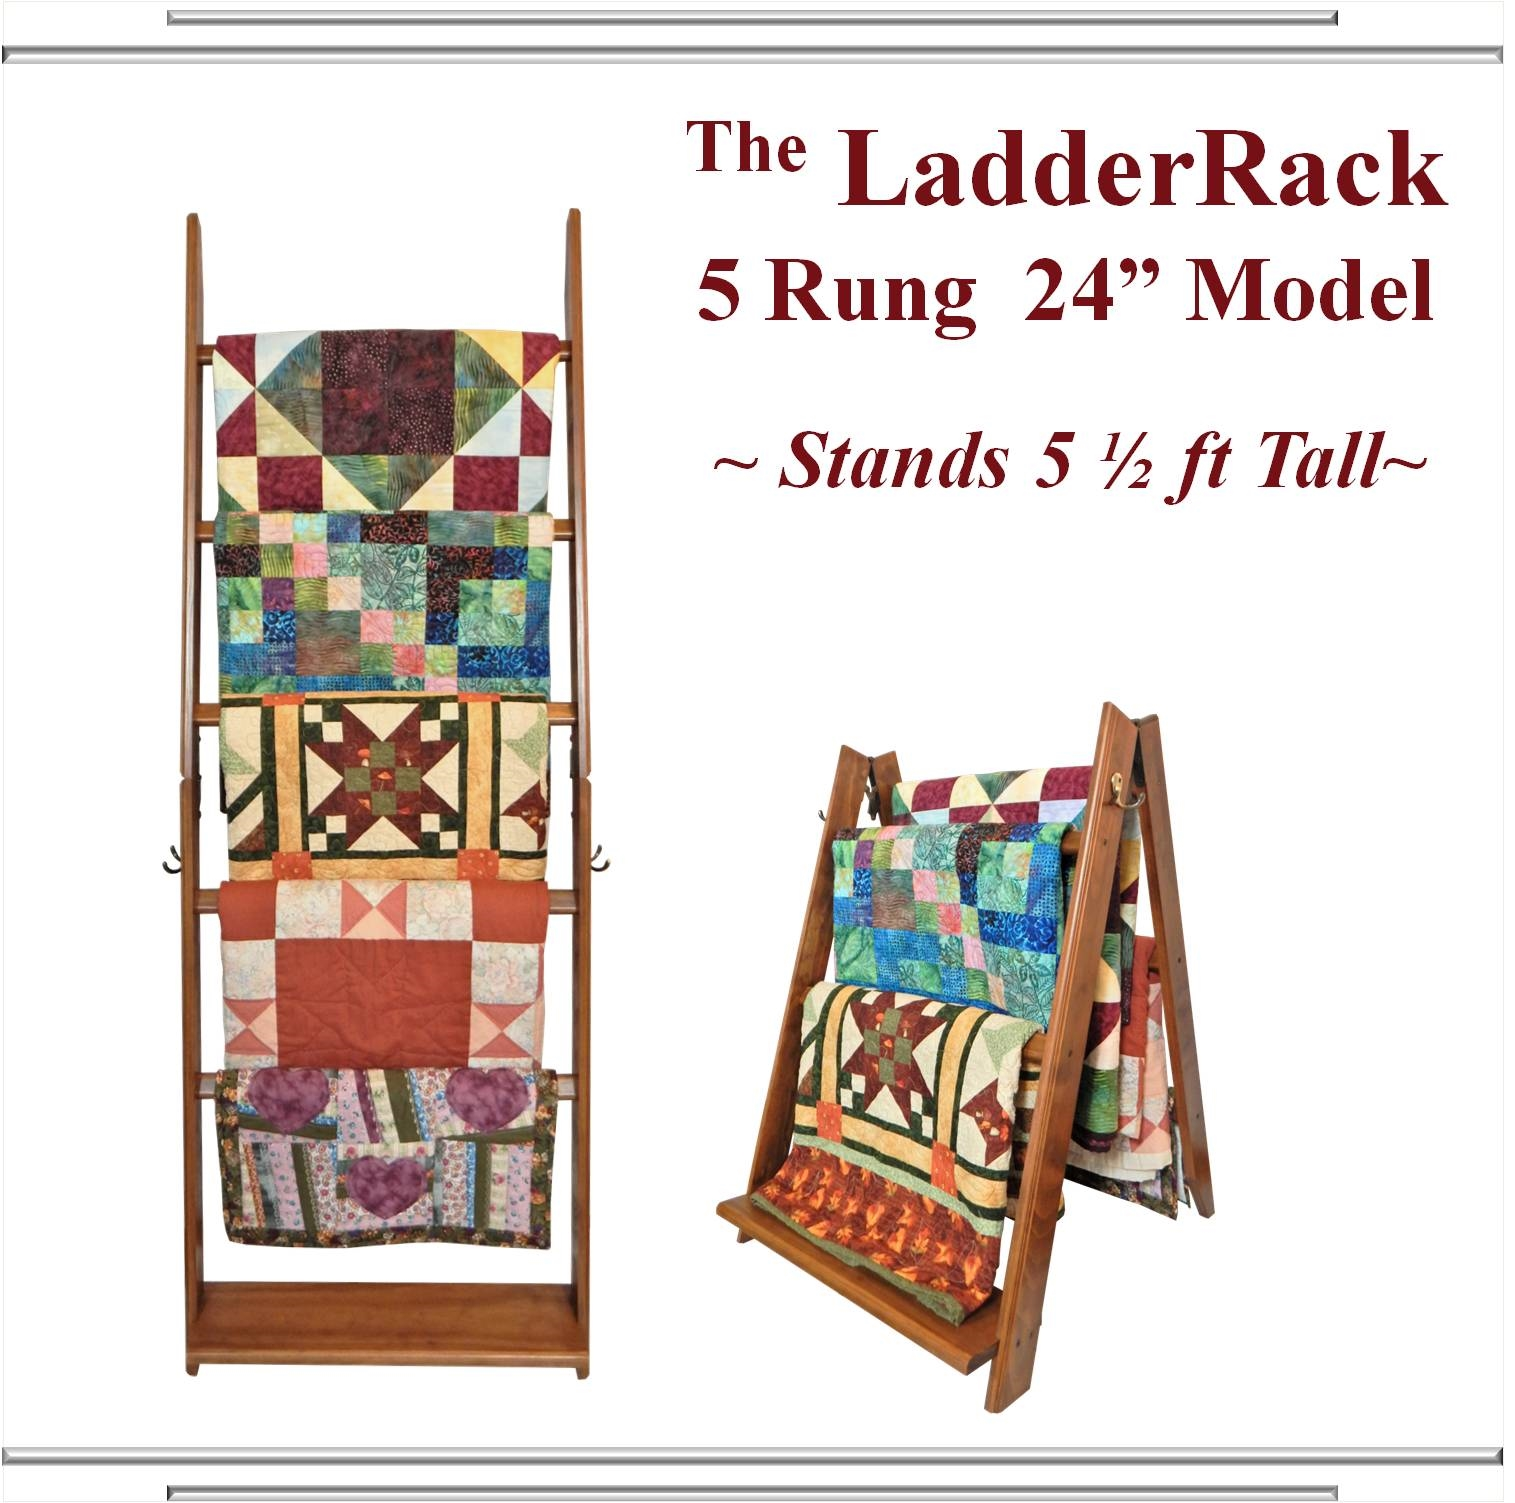 The Ladderrack Handcrafted Wood Quilt Ladder Display Rack